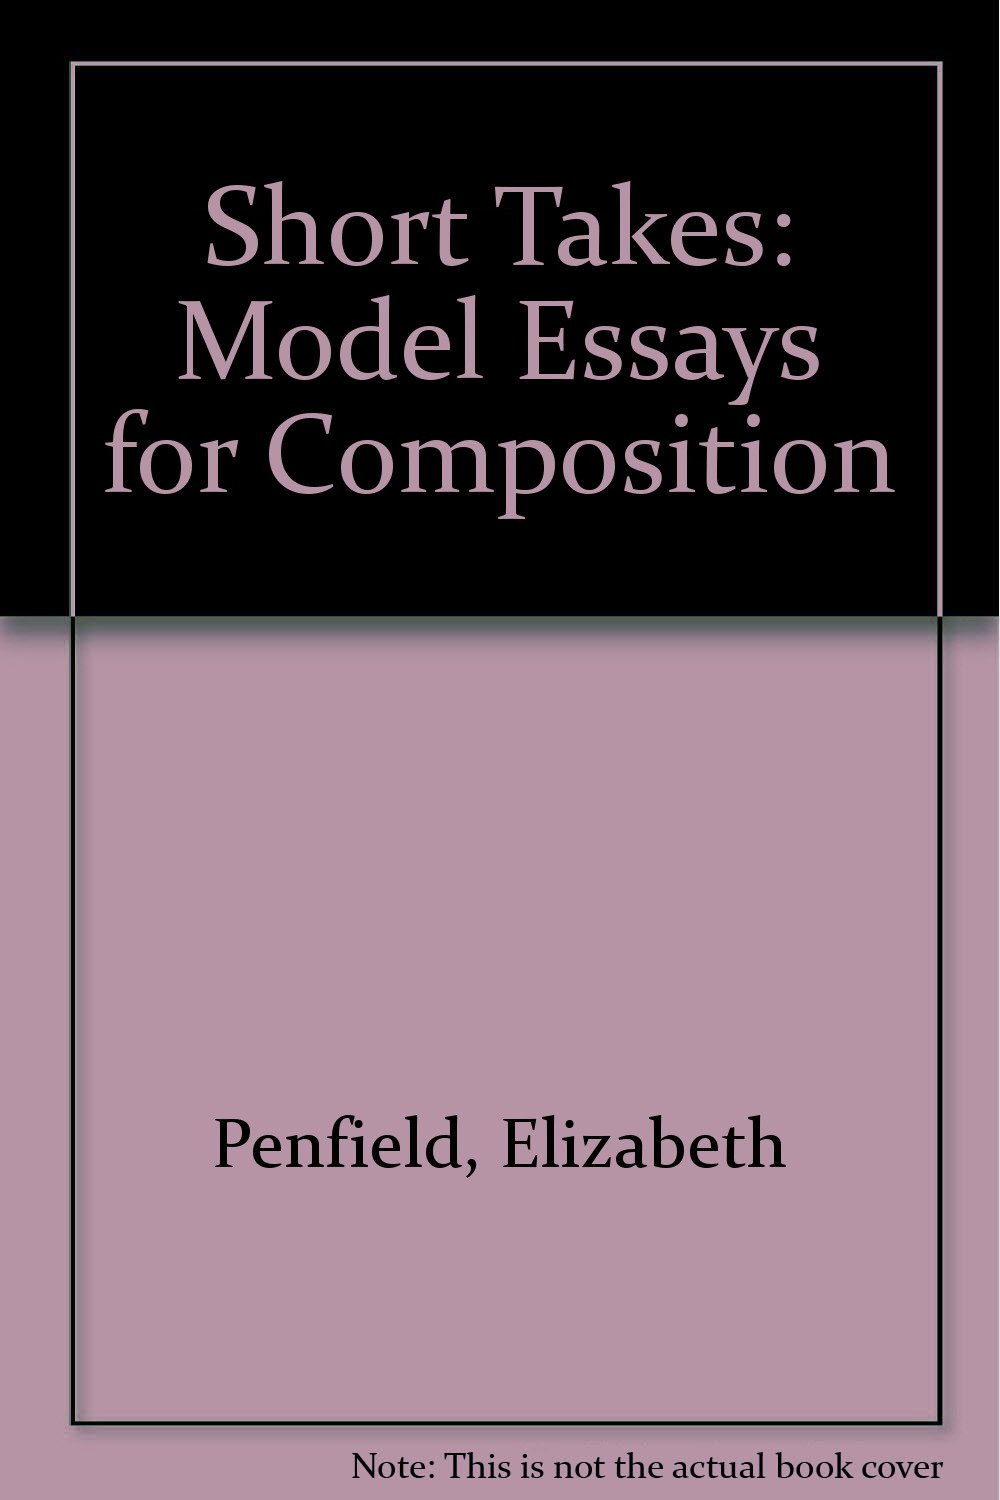 015 Essay Example 61cenqqb8bl Models For Writers Short Essays Singular Composition 12th Edition 13th Pdf Full